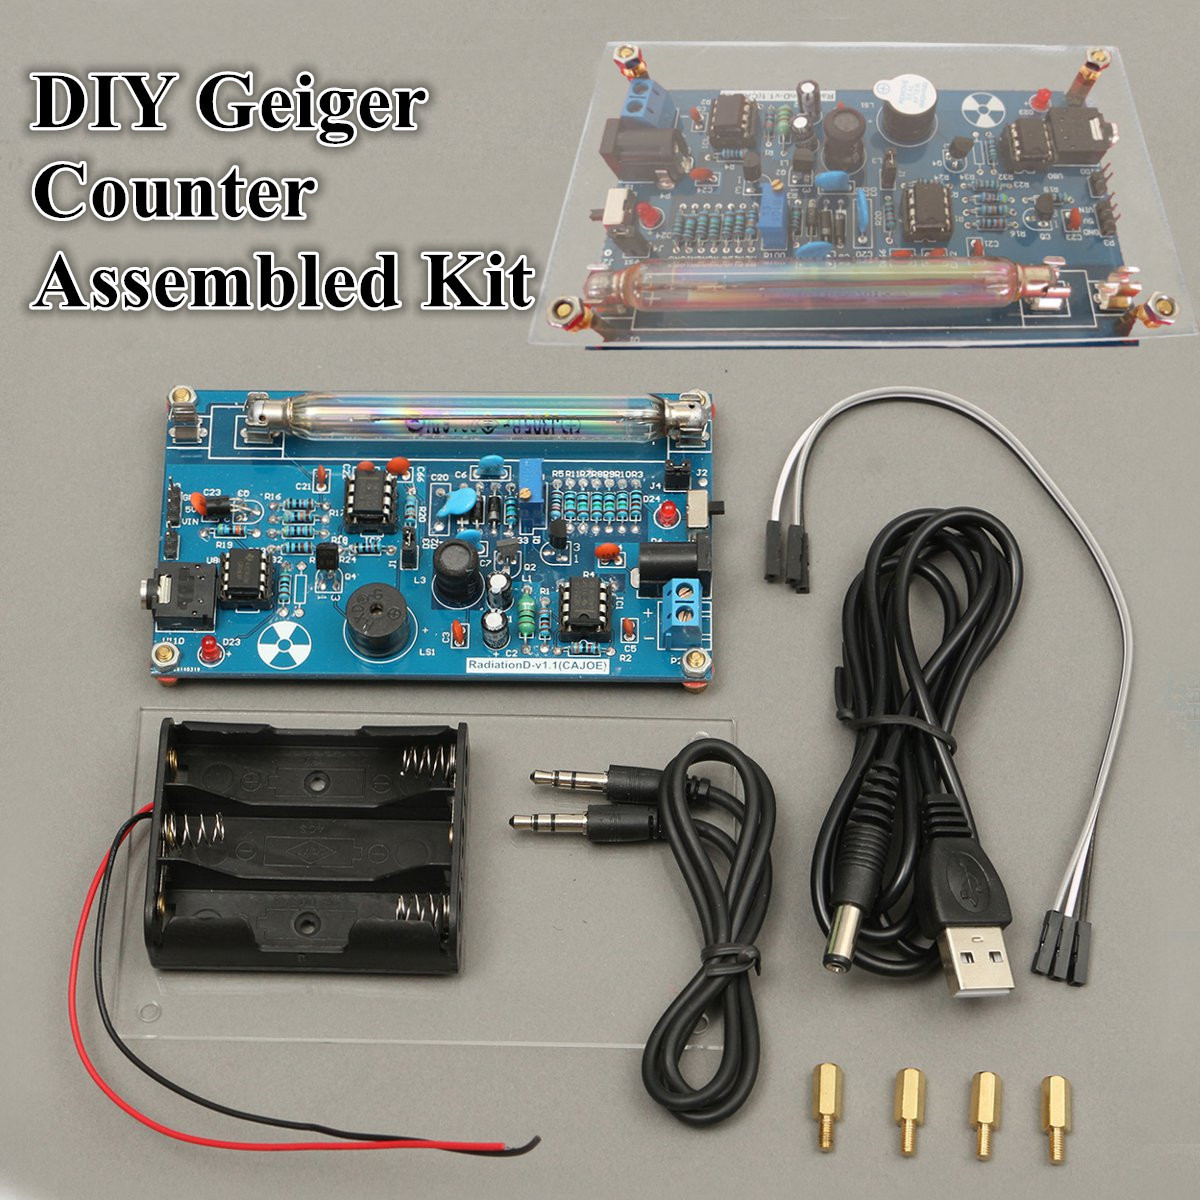 Assembled Diy Geiger Counter Kit Nuclear Radiation Detector Gamma Sine Systems Inc Audio Detection Circuit 1x System G M Tube Power Supply Cable Battery Holder Without Batteries 3x Jumper Wires 4x Nuts Acrylic Cover